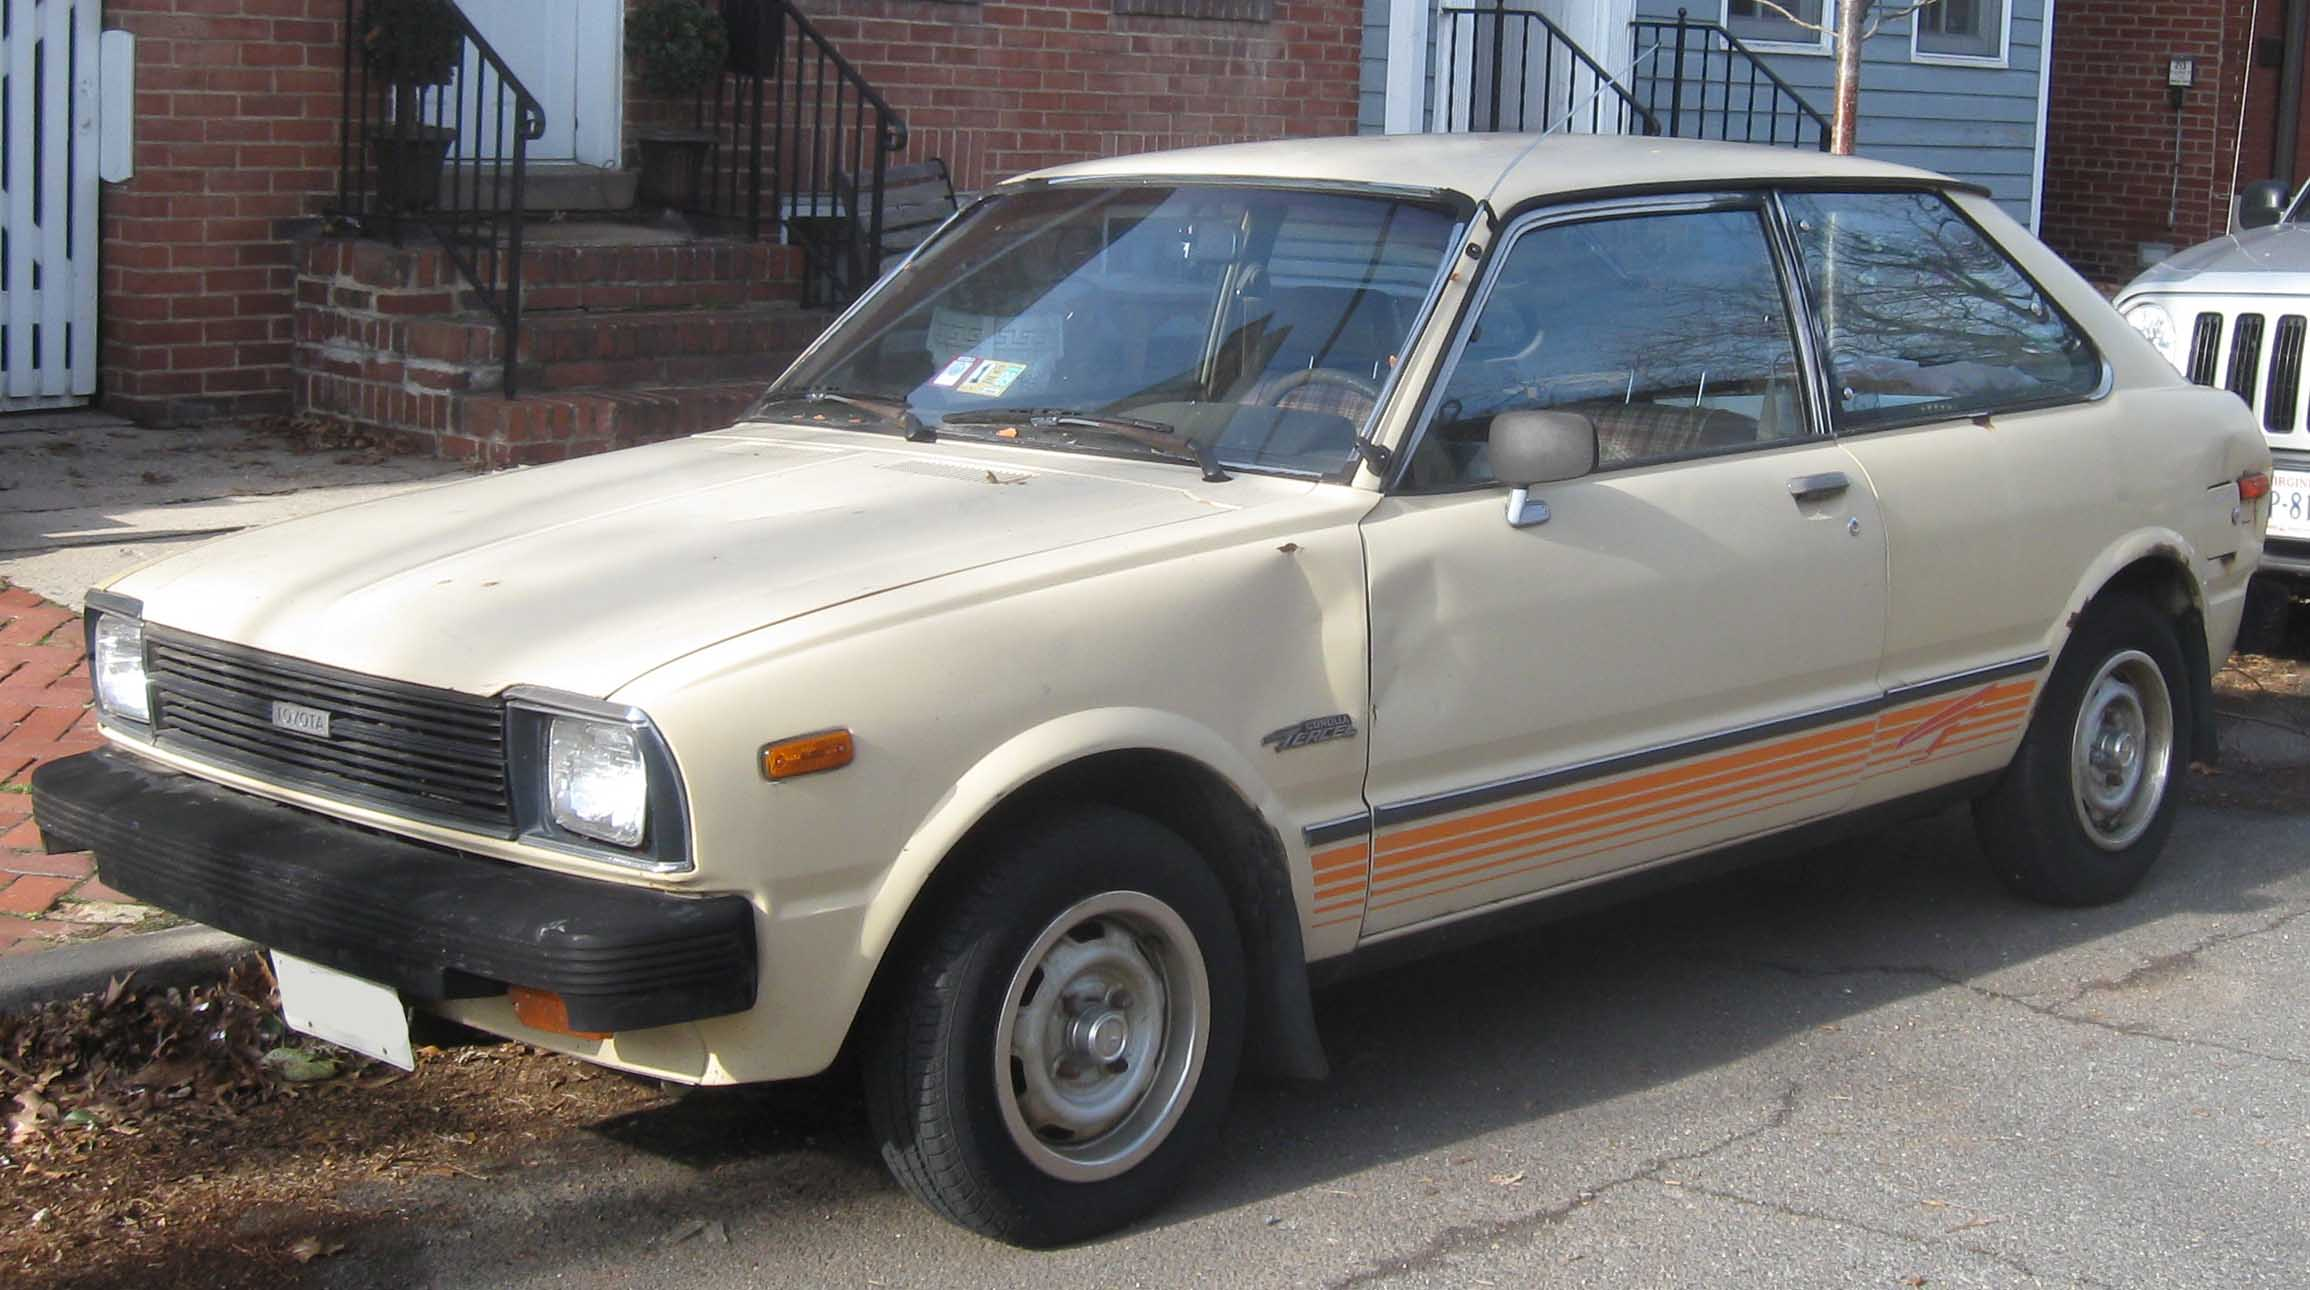 comment its aut golden anniversary popular toyotas marks blog parts interior most world automobile page akio corolla worlds hemmings s toyota the daily toyoda